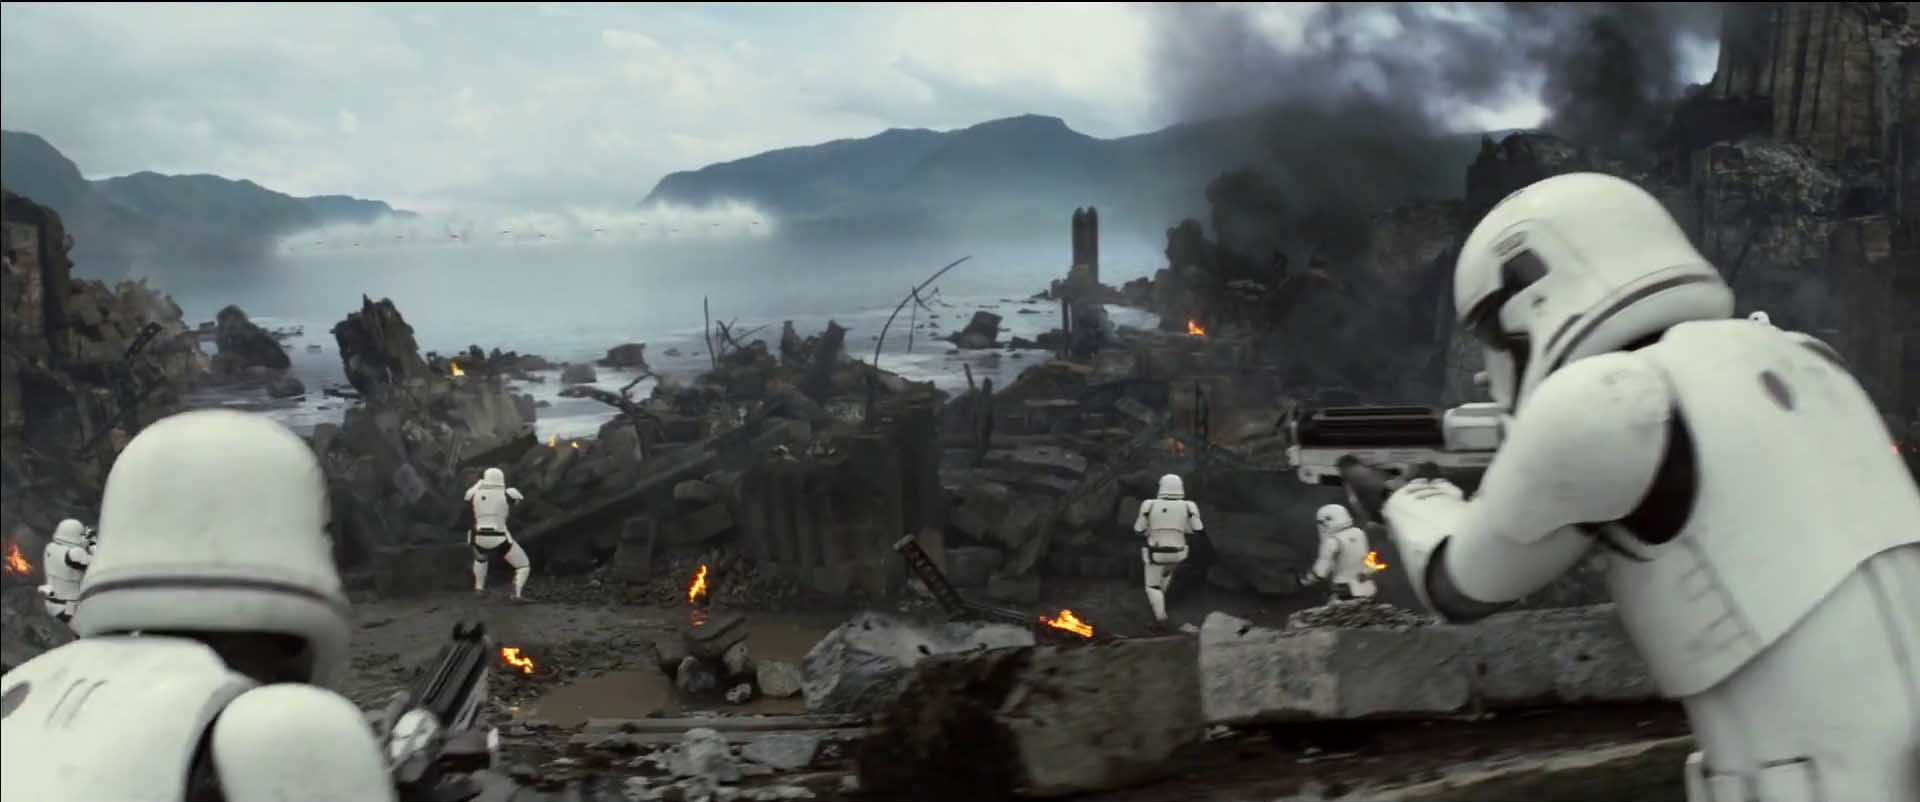 Star Wars The Force Awakens Battle Stormtroopers